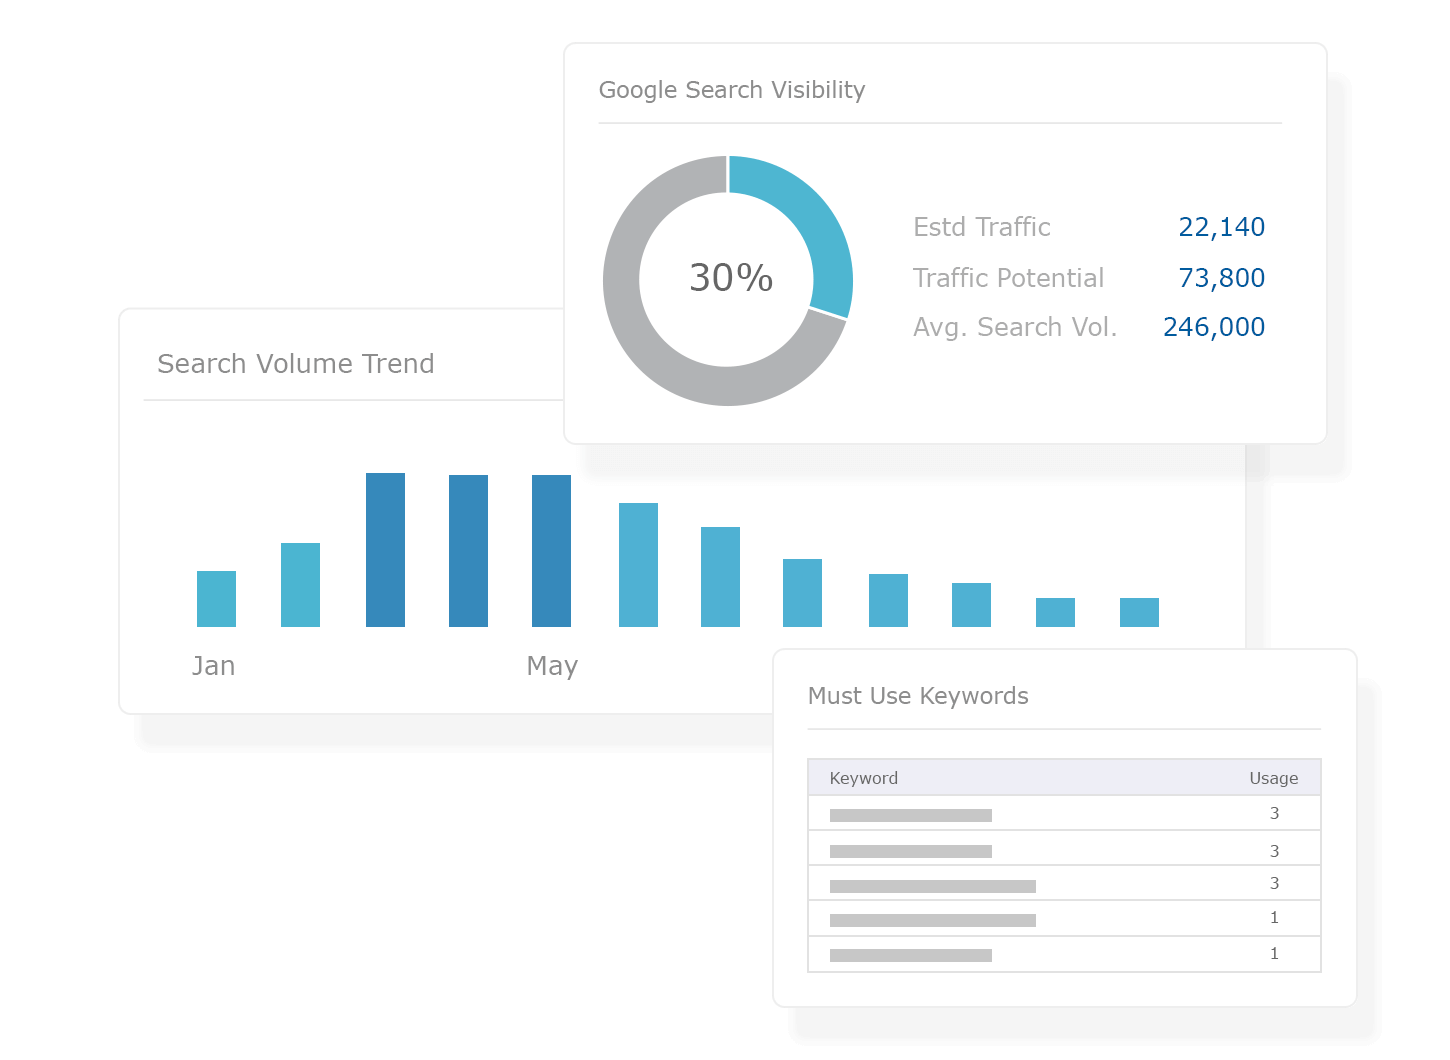 Content Marketing - Drive Traffic with Content Insights